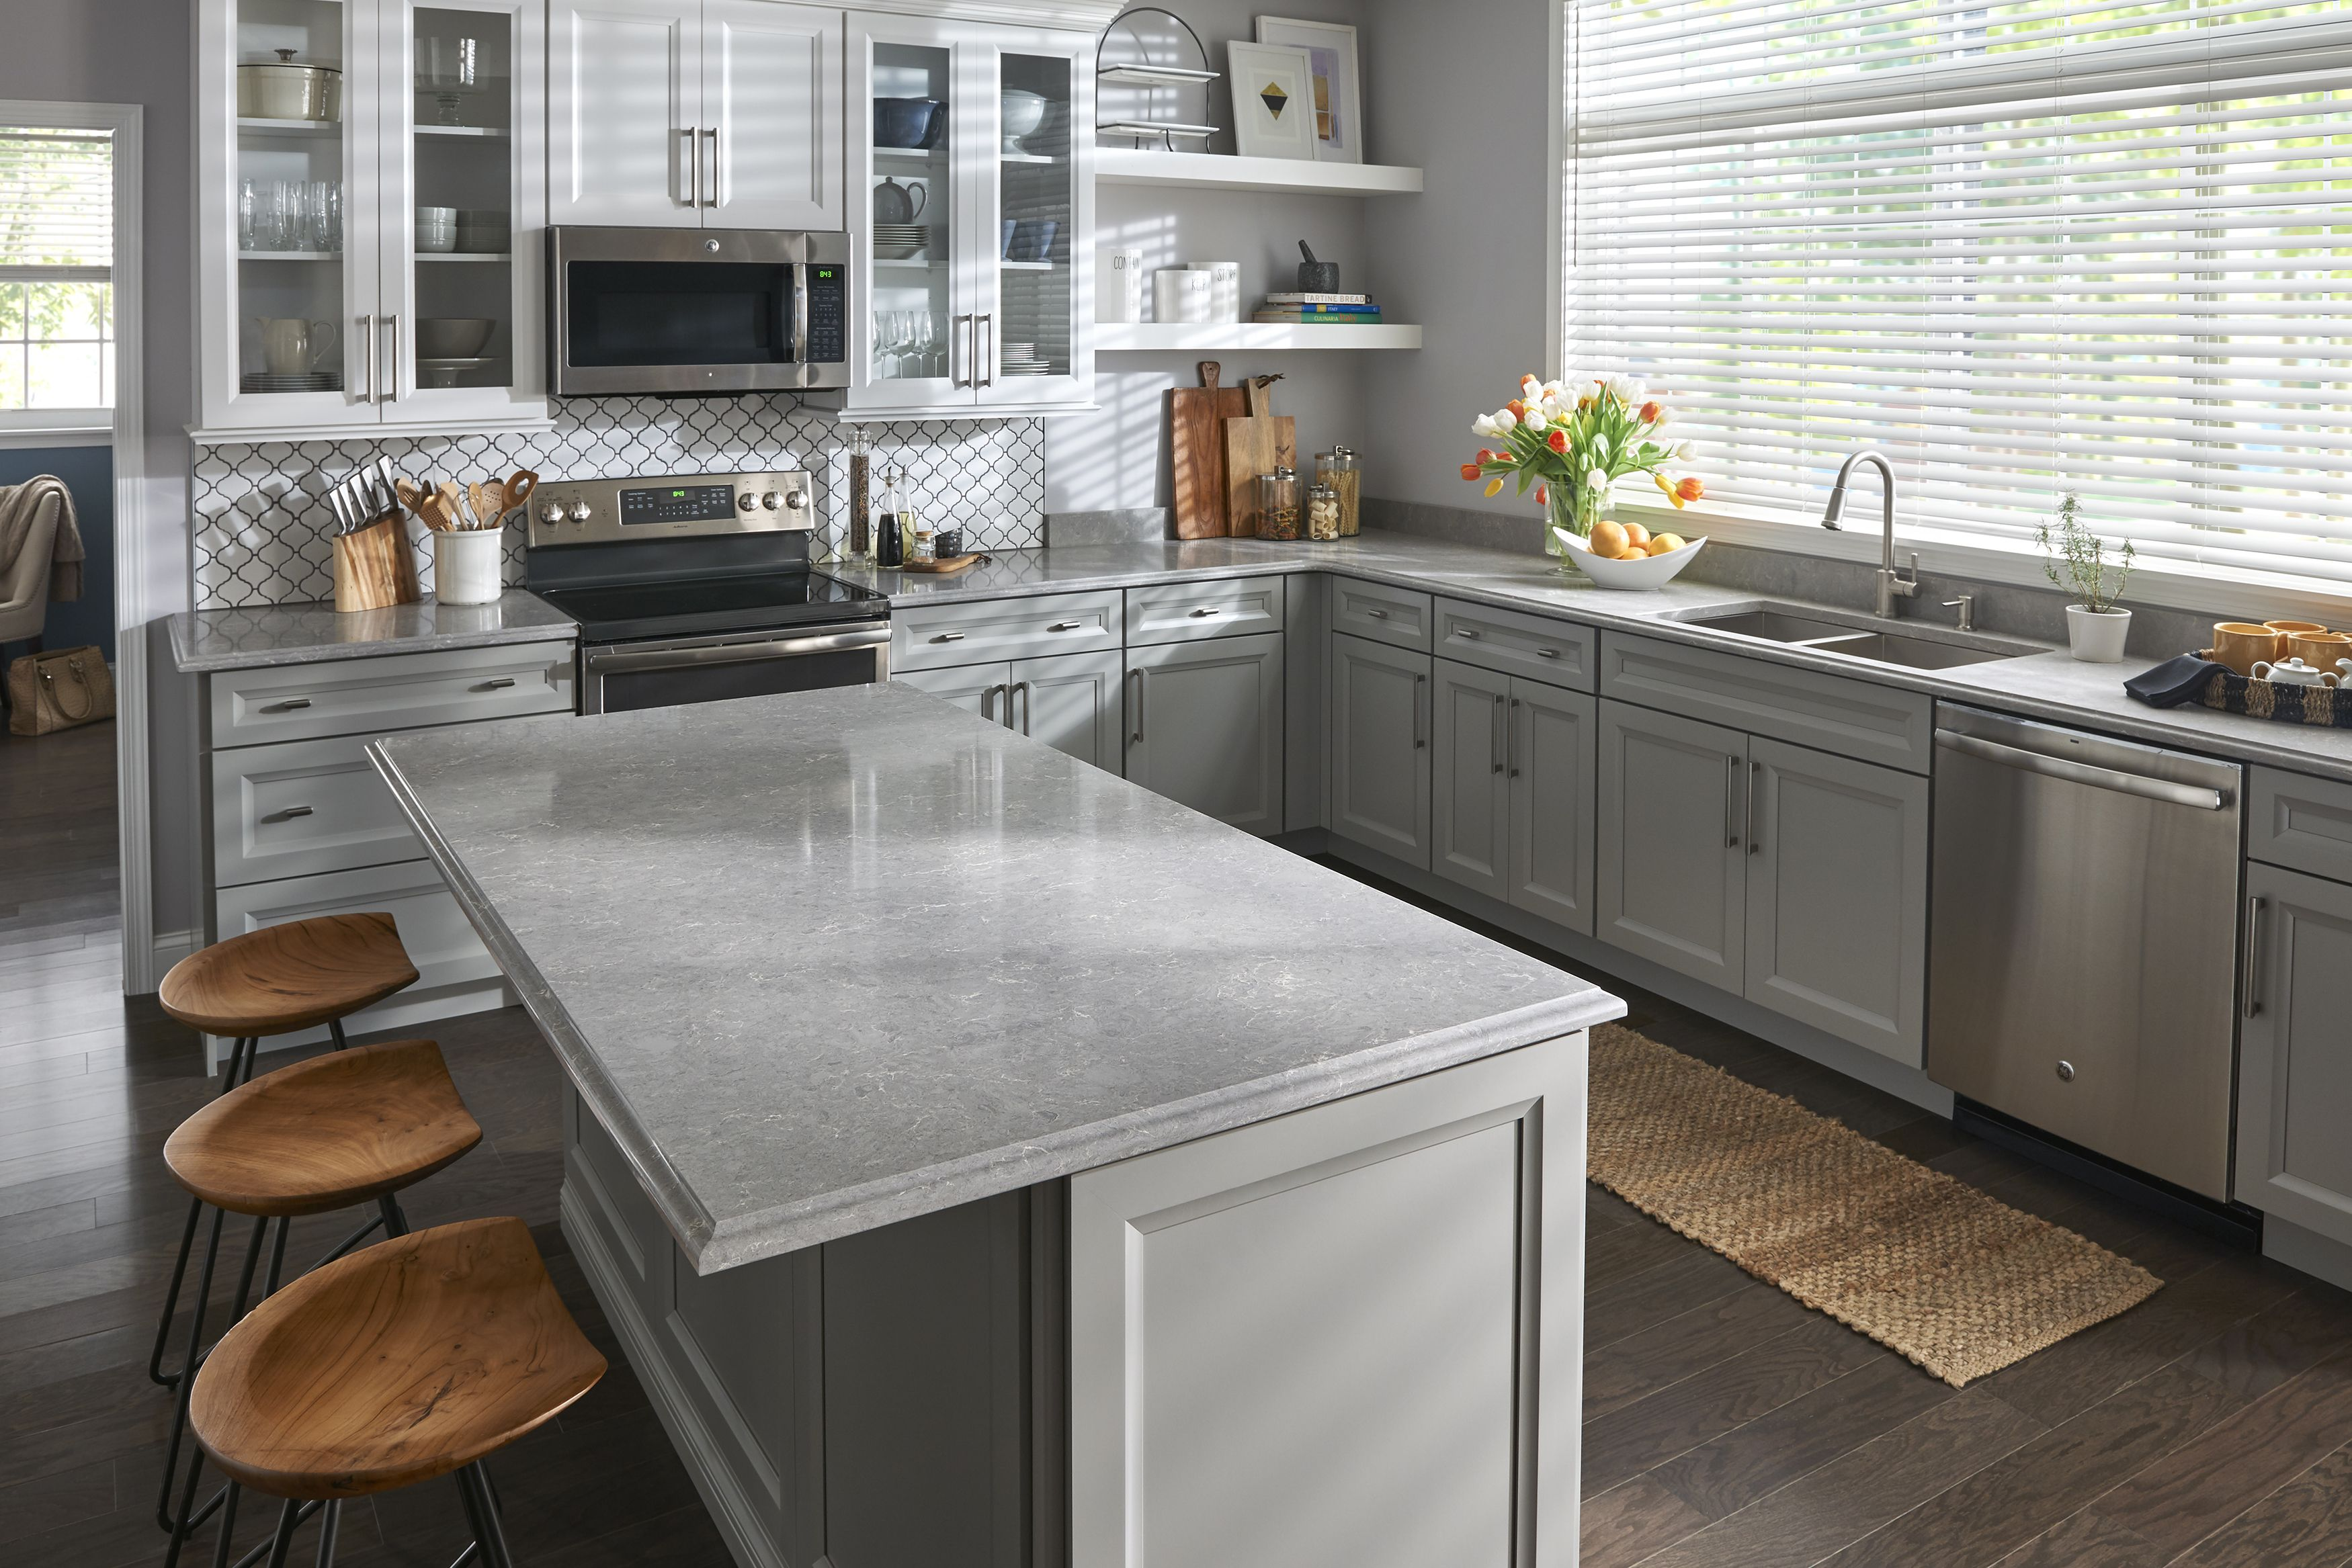 Kitchen Countertops Made Of Quartz Lg